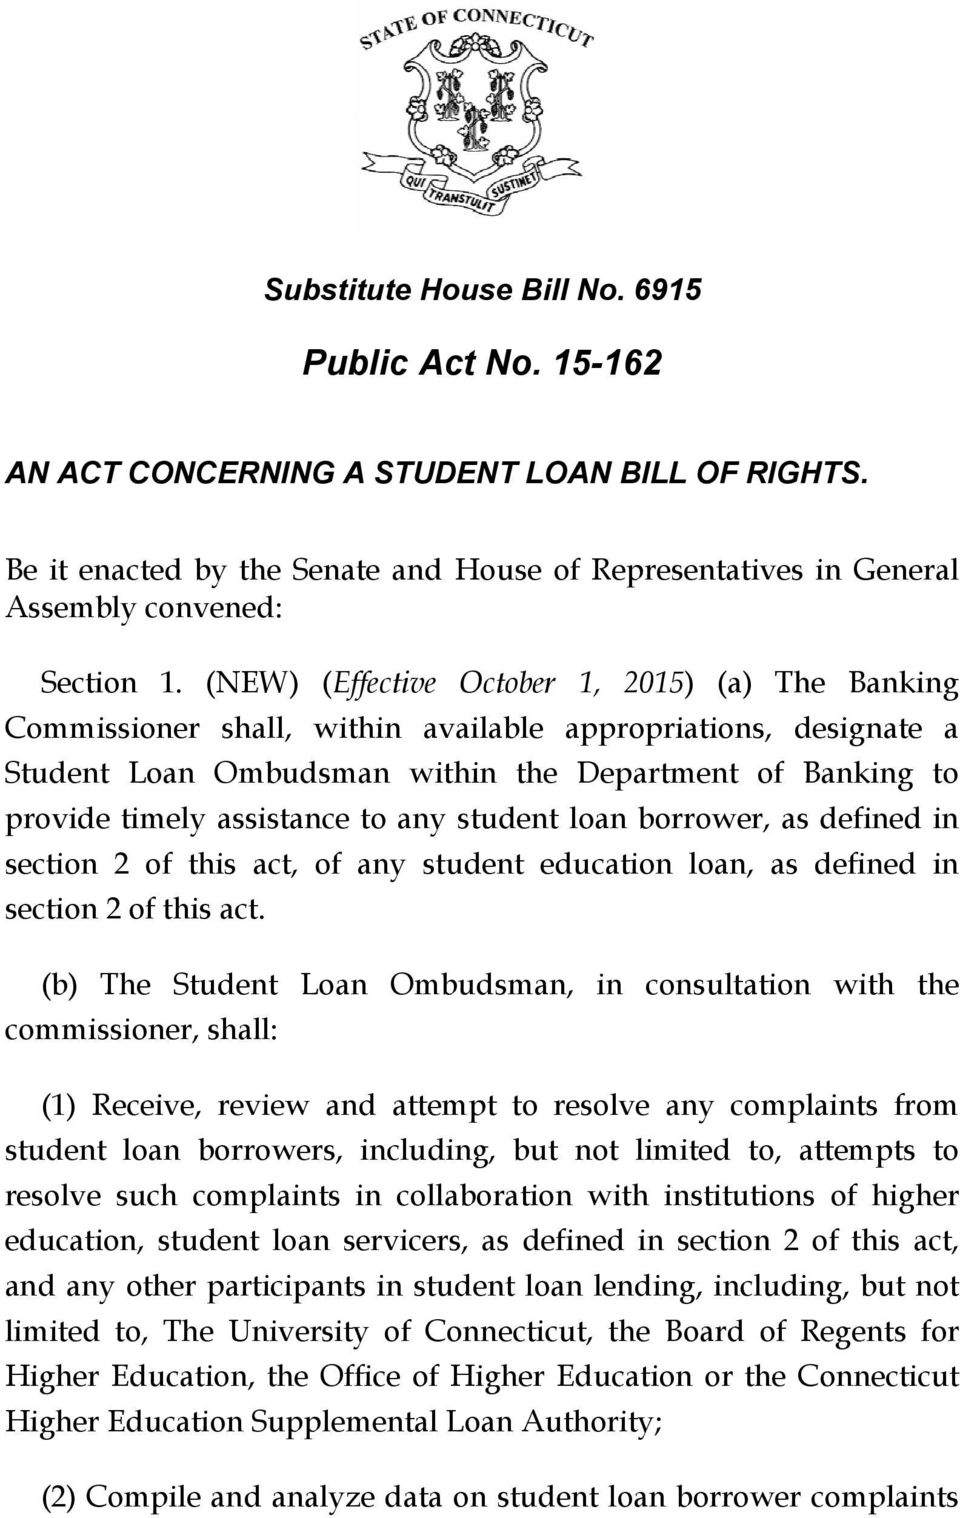 to any student loan borrower, as defined in section 2 of this act, of any student education loan, as defined in section 2 of this act.